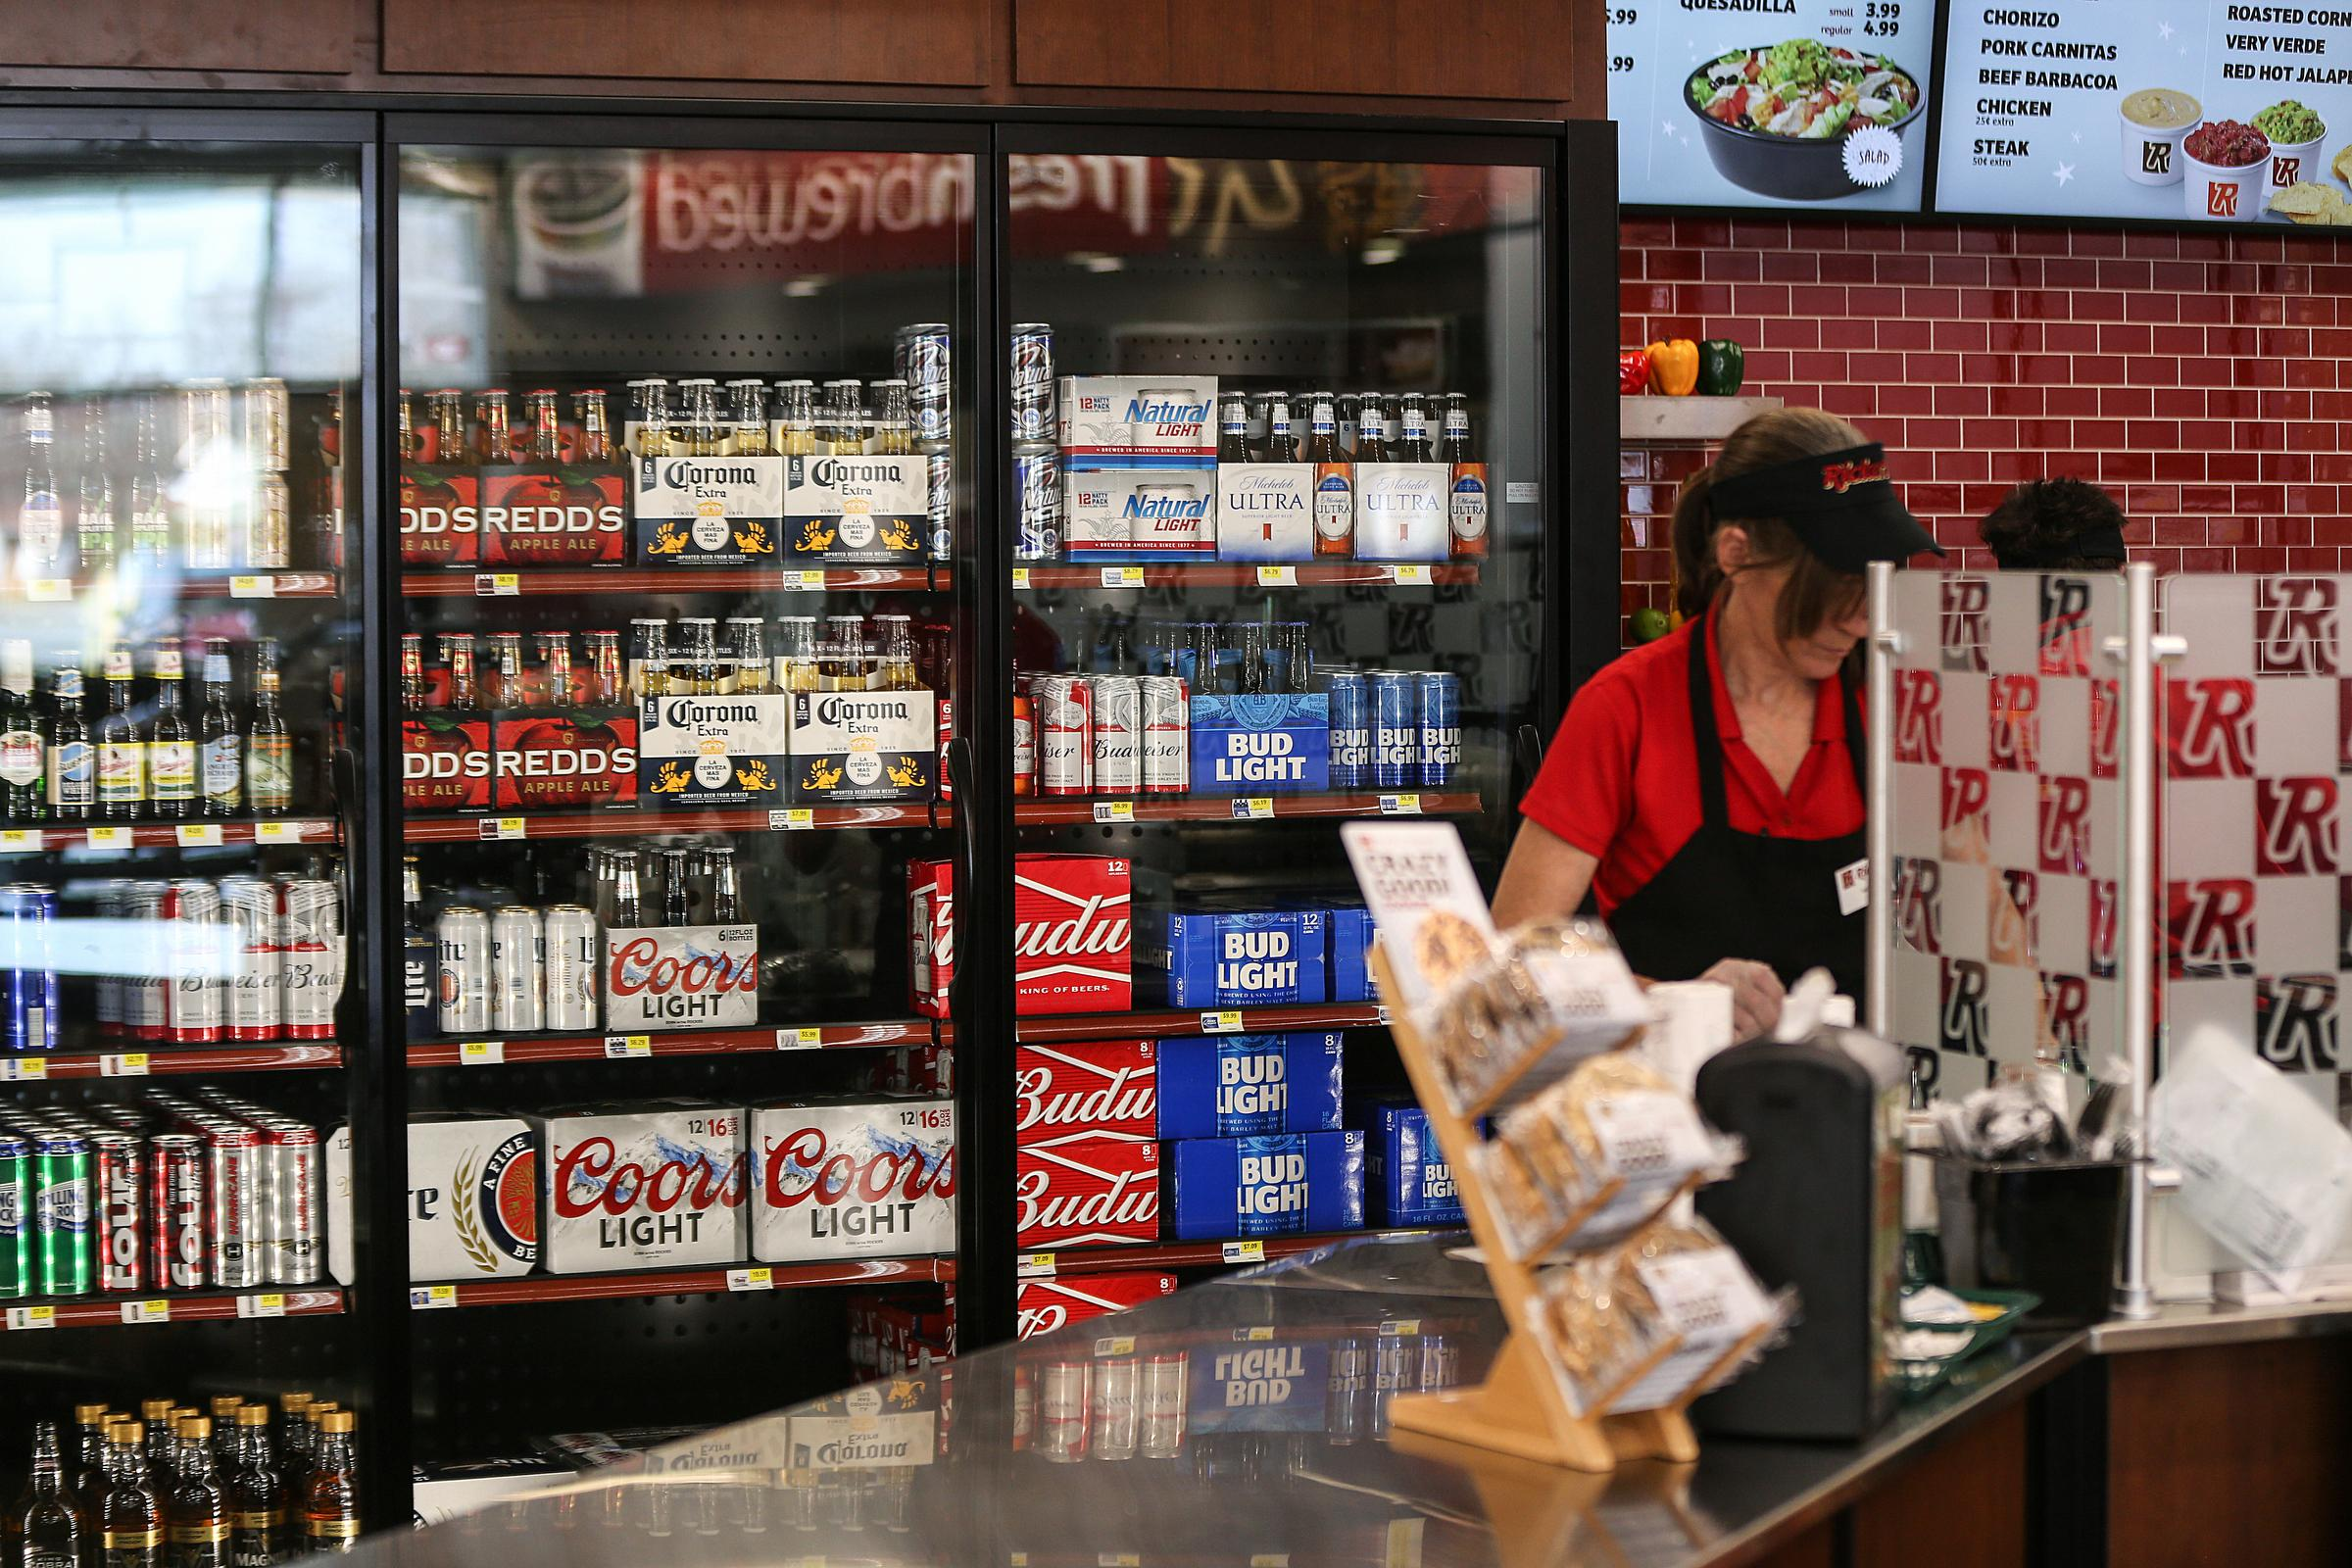 Beer-drinking Hoosiers can skirt weird liquor law with 'Chill Indiana bags'